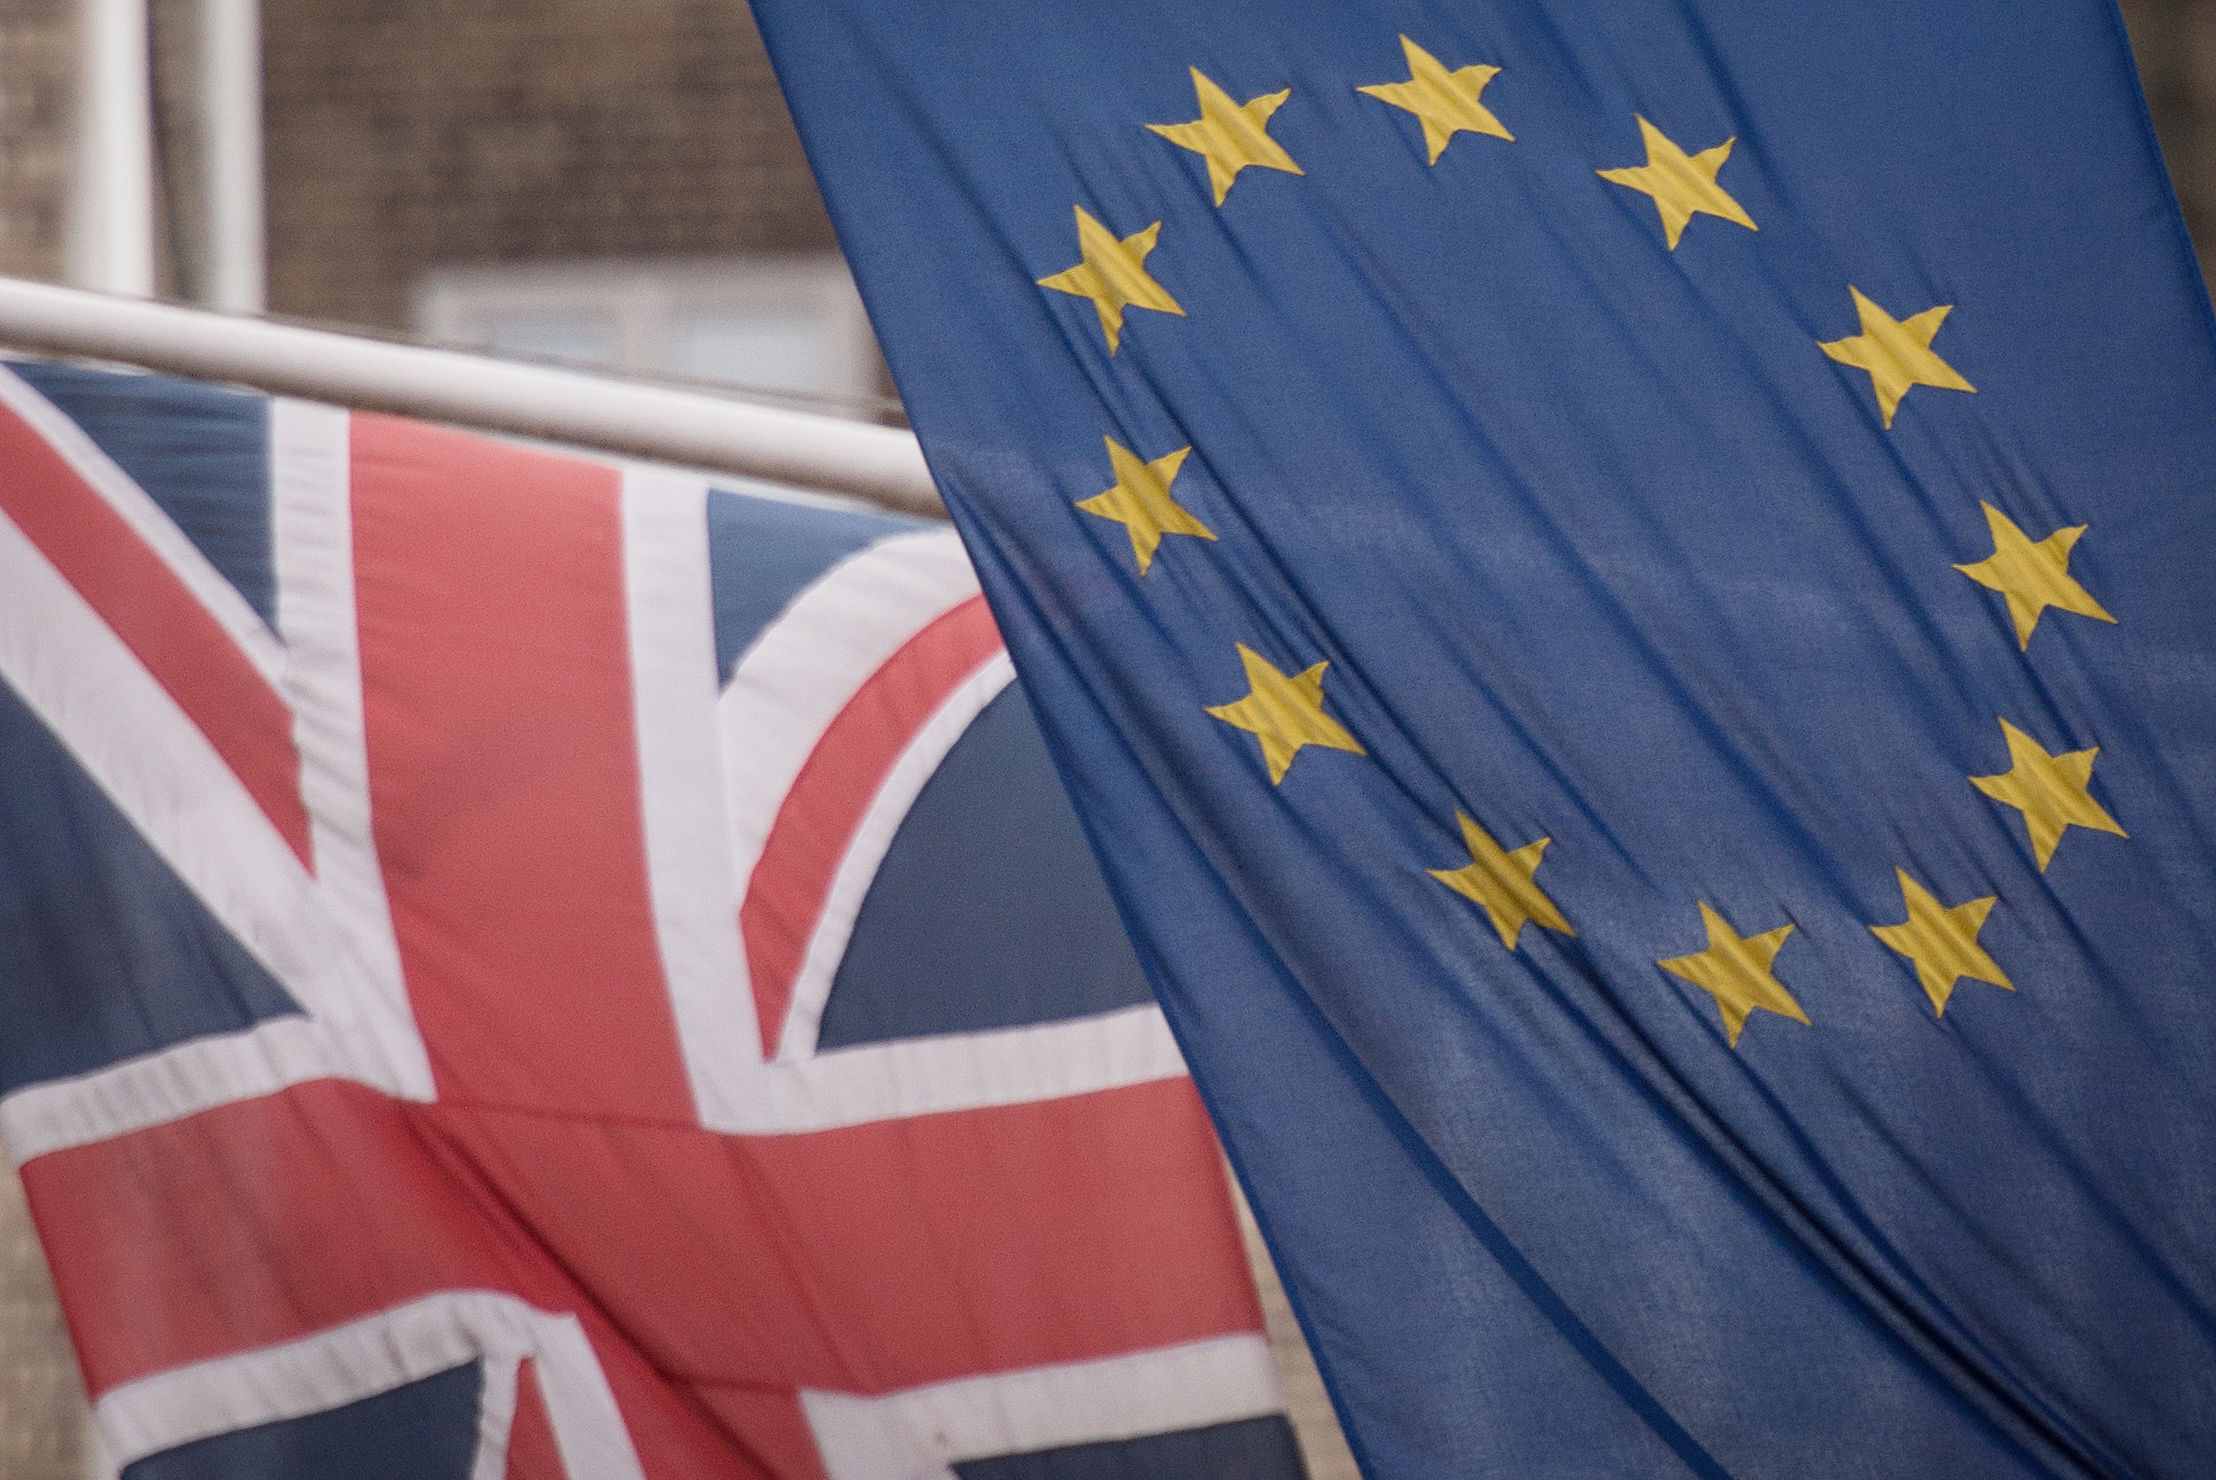 File photo dated 17/2/2016 of the EU and Union flags. MPs who want to block a no-deal Brexit will have to either vote for Theresa May's Withdrawal Agreement or a replacement to do it, Andrea Leadsom has warned. PRESS ASSOCIATION Photo. Issue date: Sun